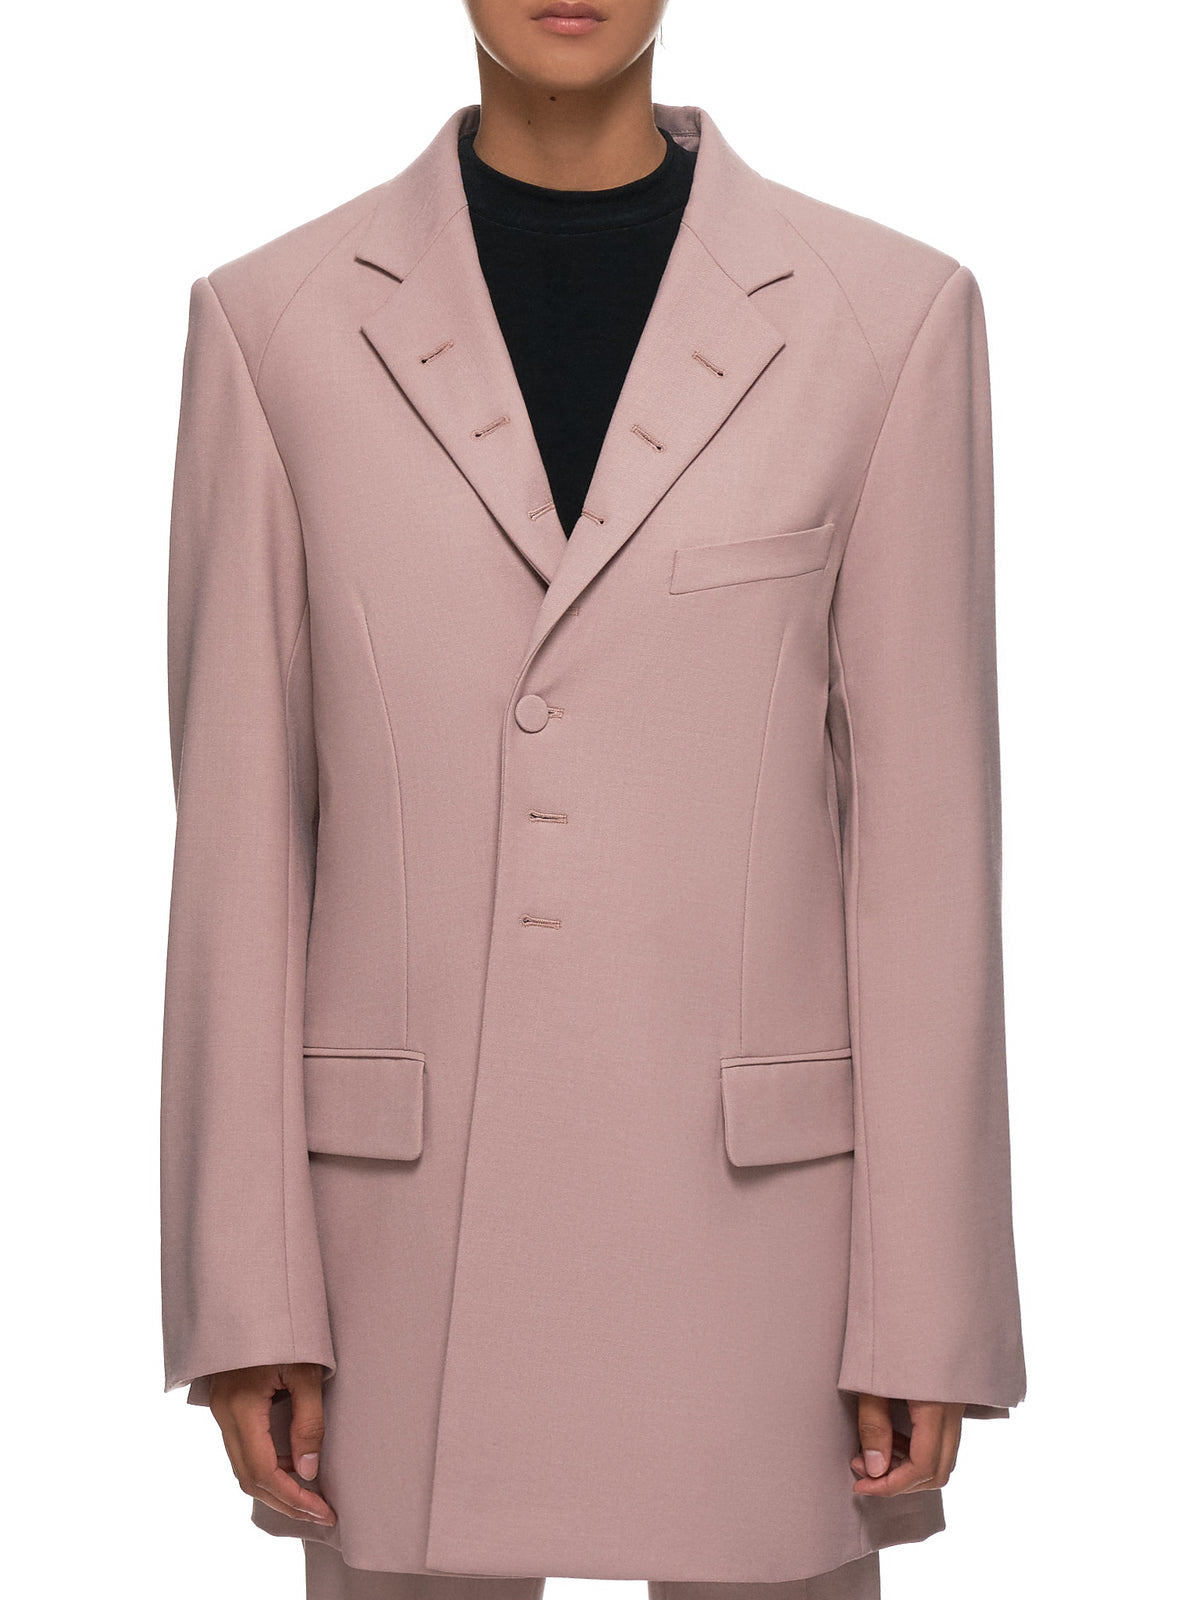 Oversized Button Hole Blazer (R5CA42-WM-ASH-PINK)